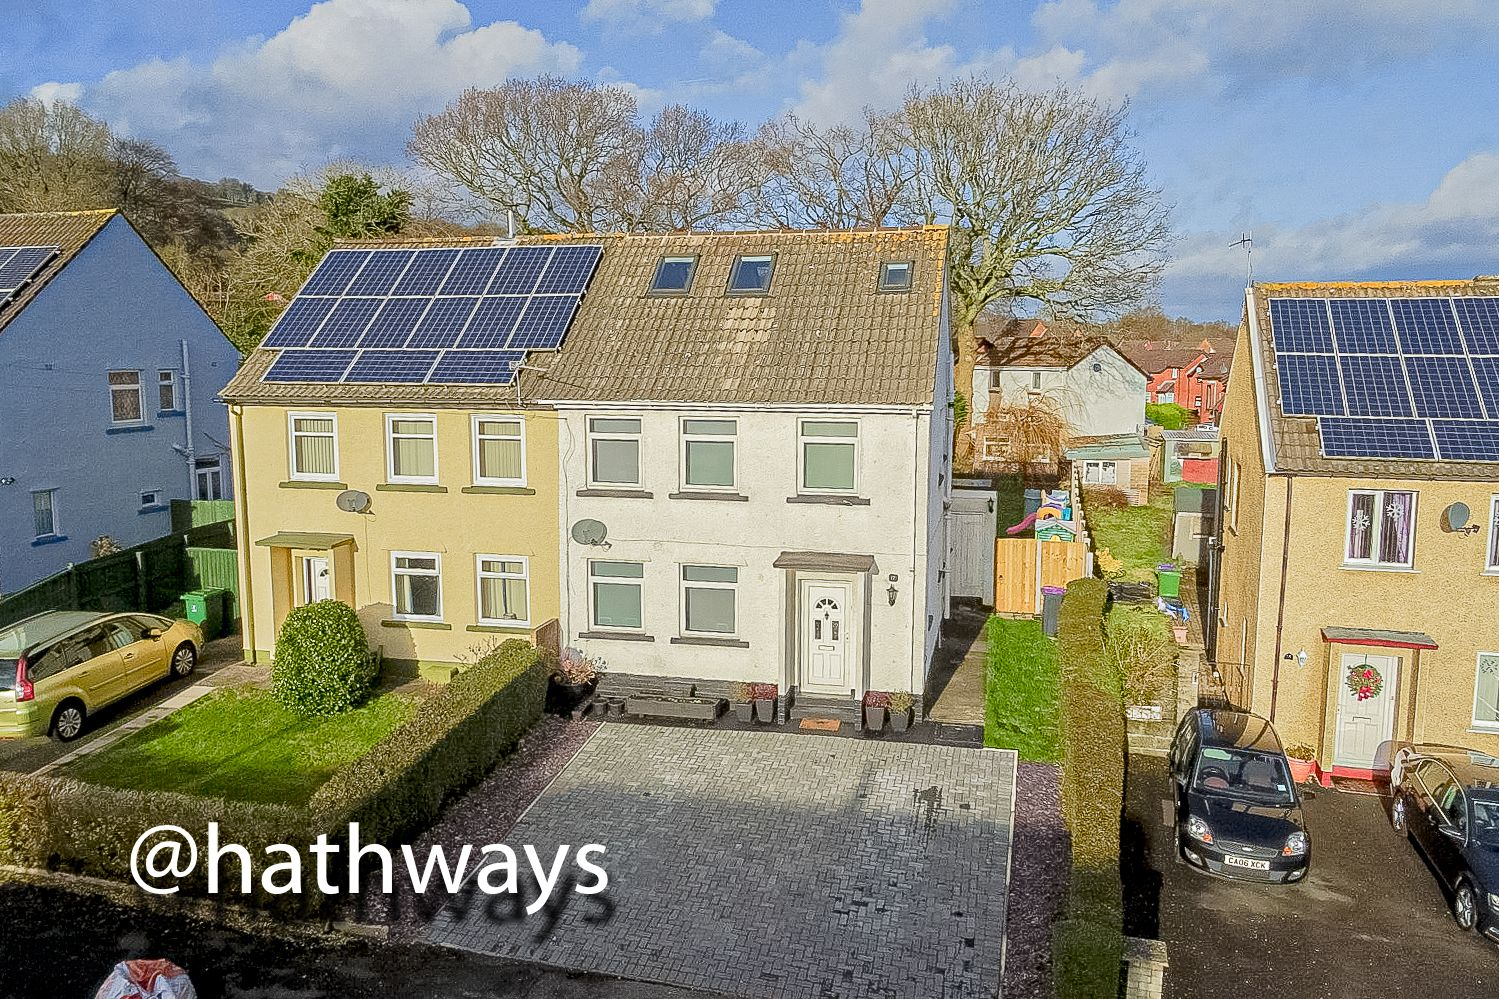 4 bed house for sale in Maesgwyn, NP44